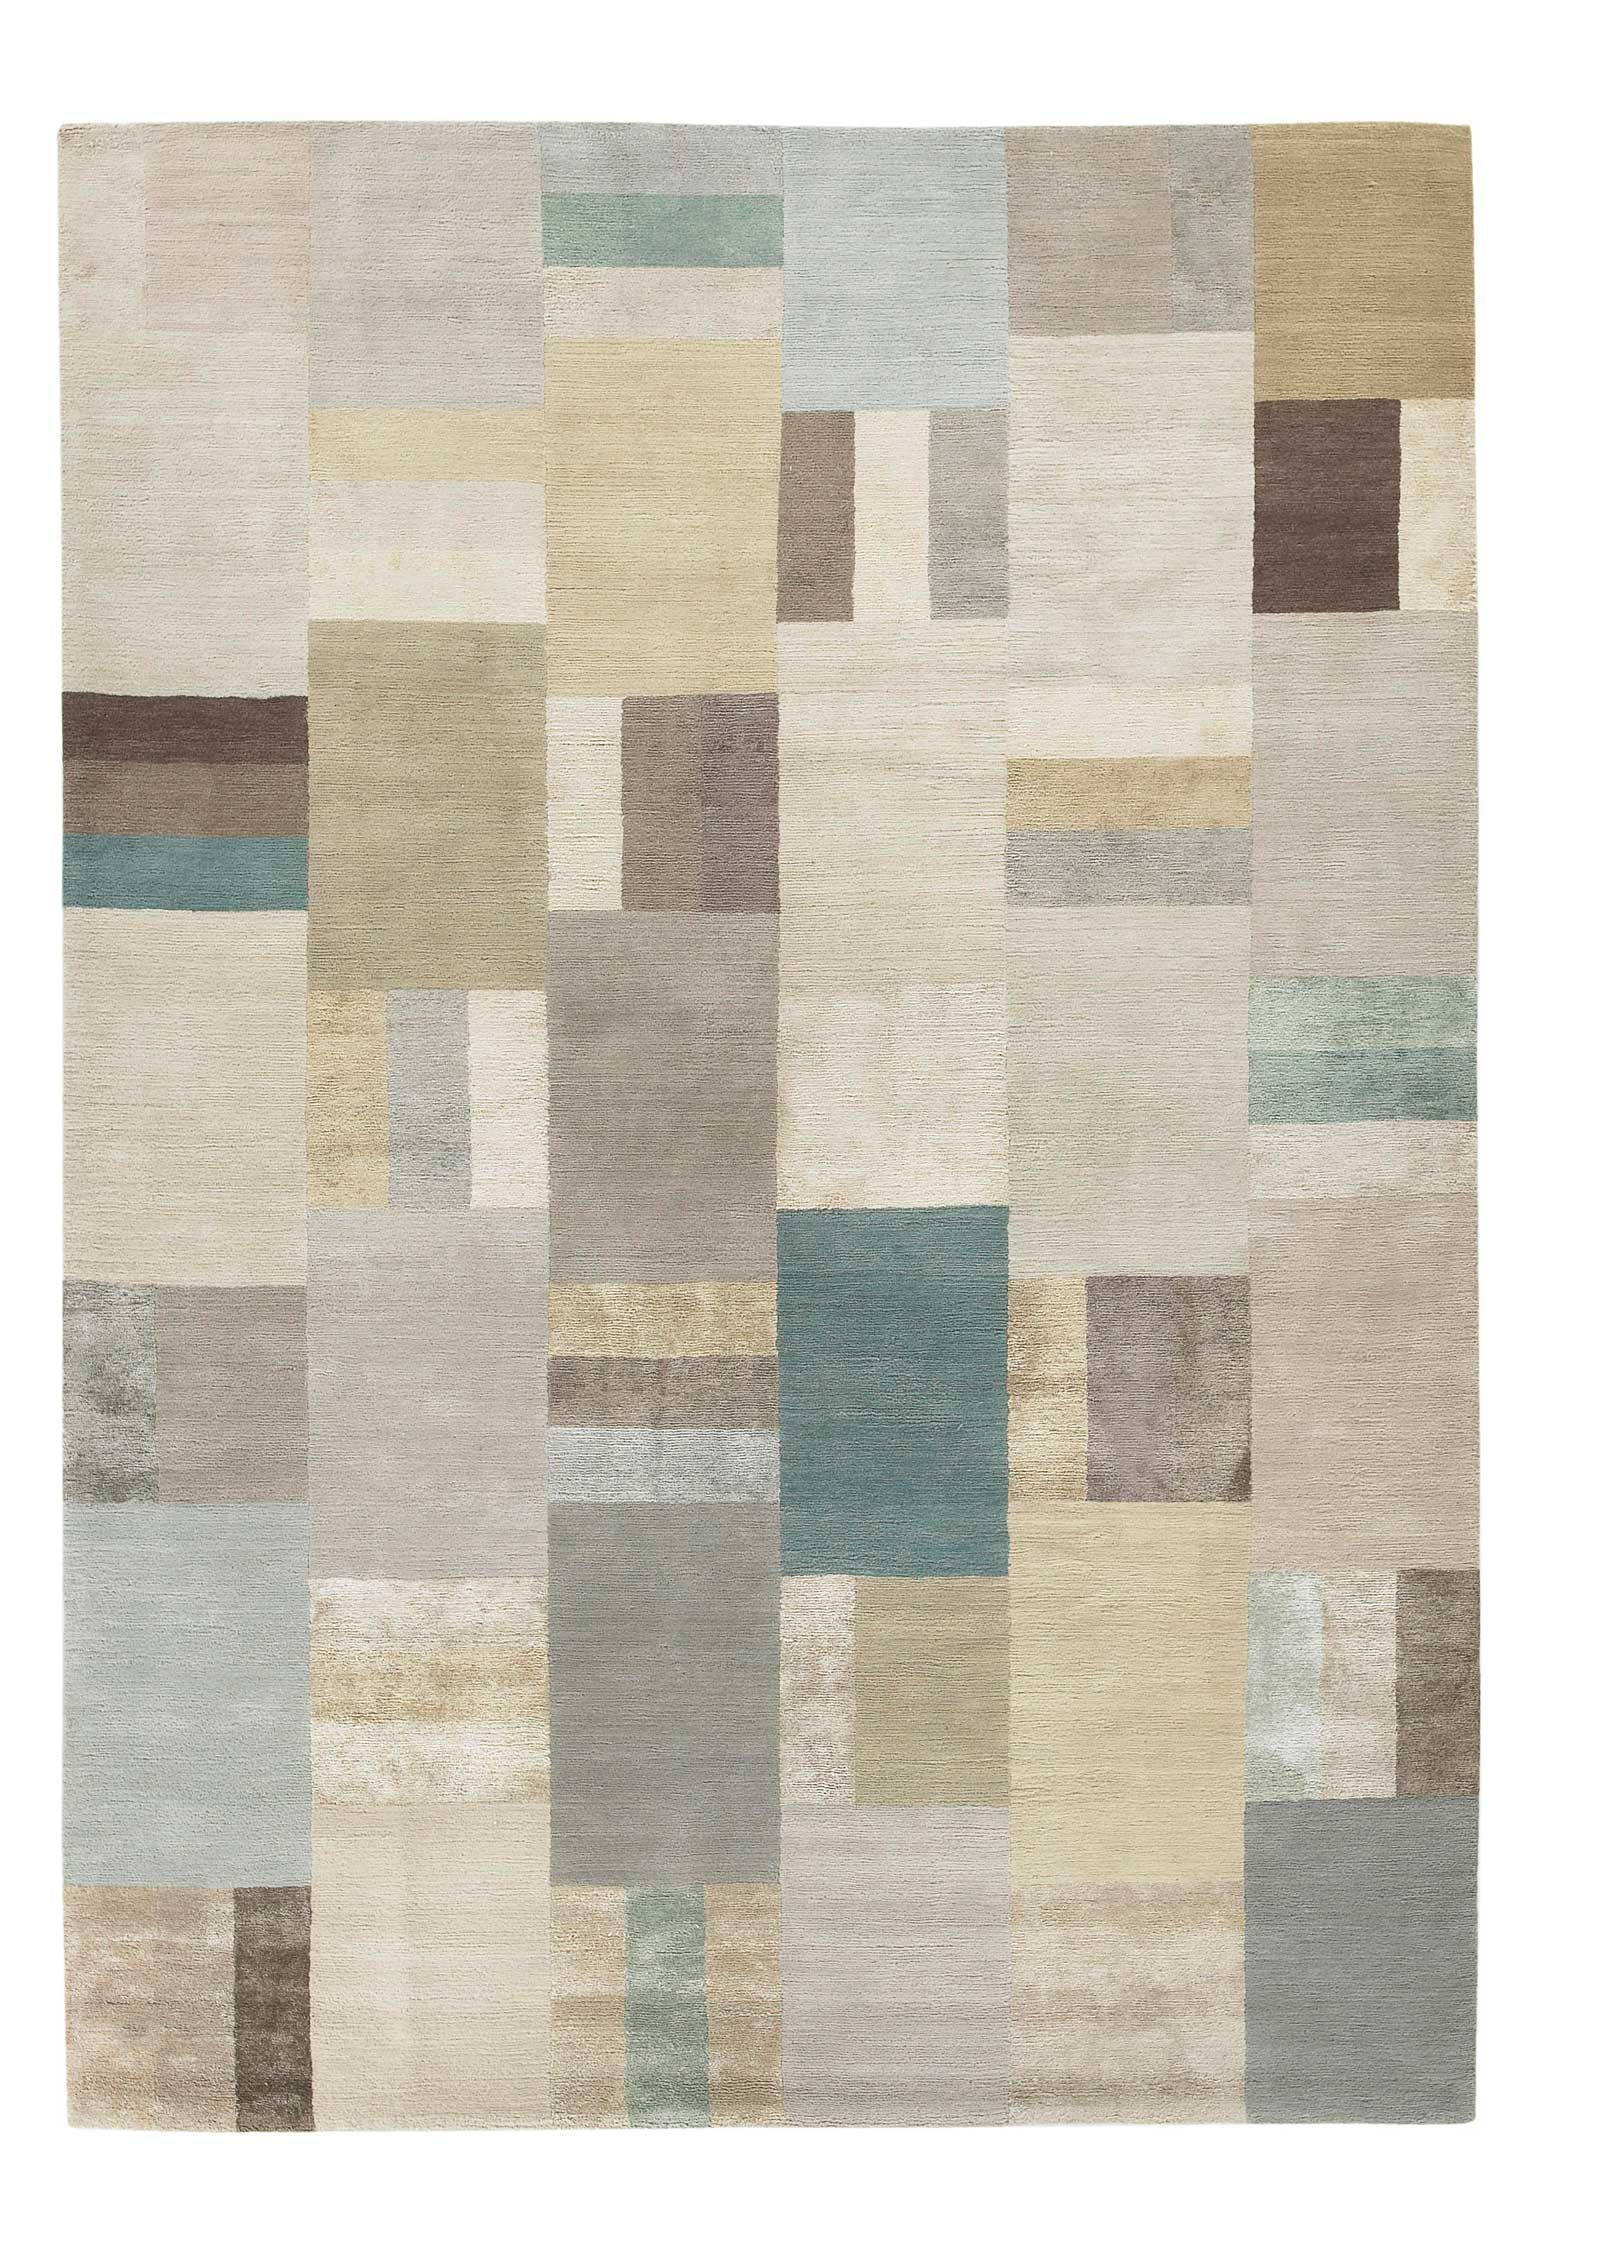 Handmade Designer Rugs By The Rug Company Contemporary Rugs Rug Design Rugs